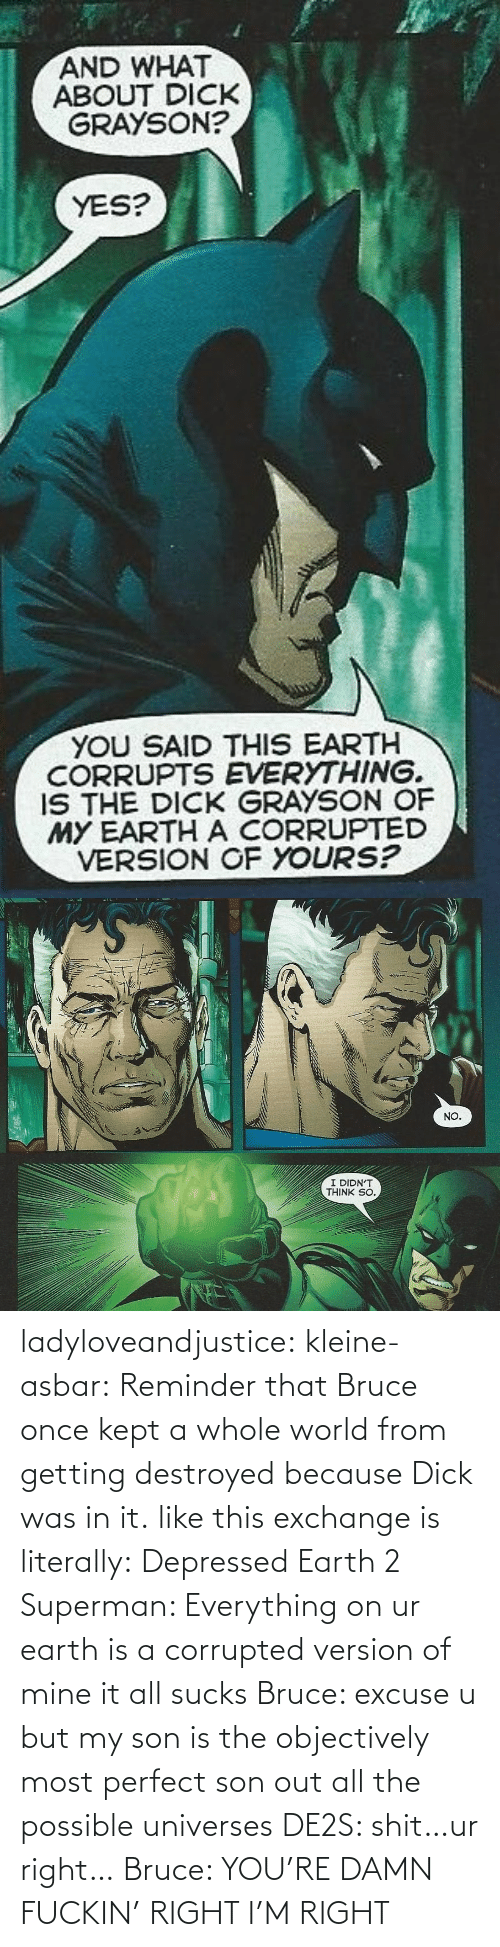 Dick: ladyloveandjustice:  kleine-asbar: Reminder that Bruce once kept a whole world from getting destroyed because Dick was in it. like this exchange is literally: Depressed Earth 2 Superman: Everything on ur earth is a corrupted version of mine it all sucks Bruce: excuse u but my son is the objectively most perfect son out all the possible universes DE2S: shit…ur right… Bruce: YOU'RE DAMN FUCKIN' RIGHT I'M RIGHT